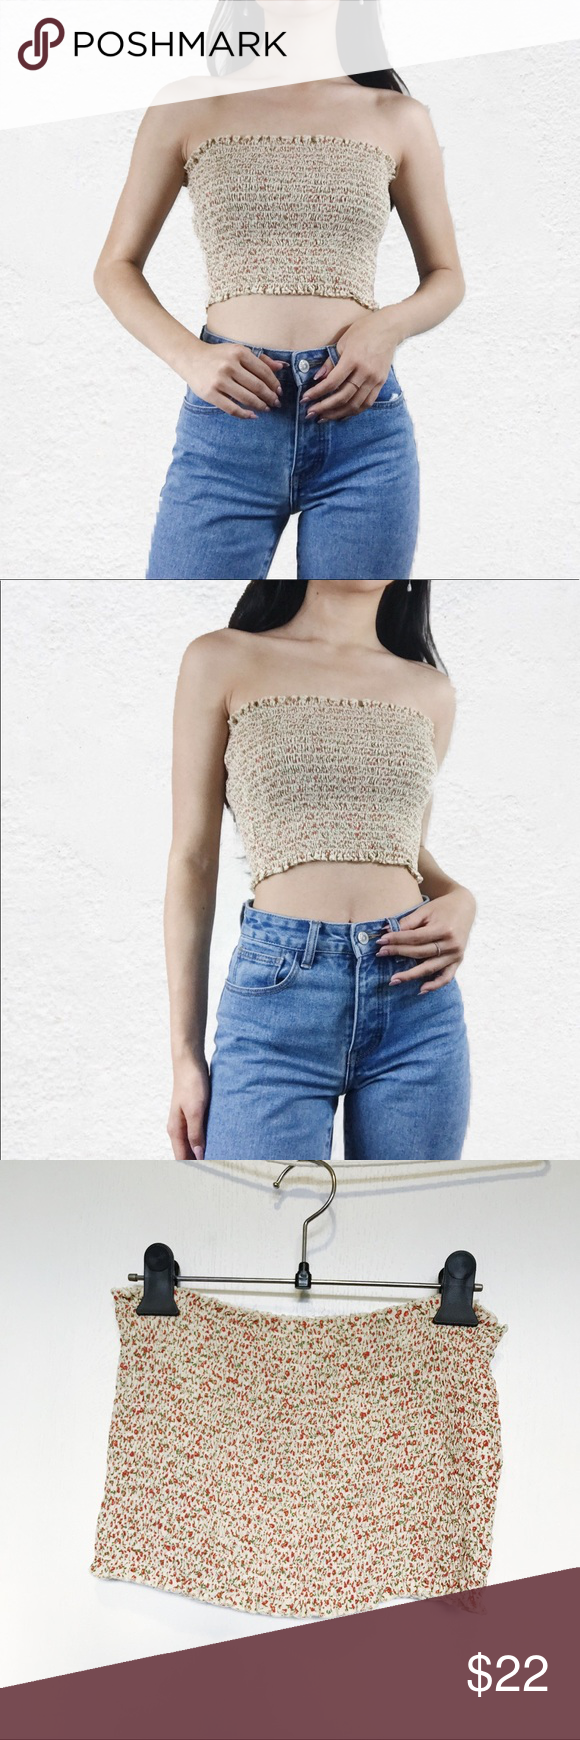 d6c389a546 Brandy Melville yellow floral Cleo tube top No flaws Brandy Melville Tops  Crop Tops